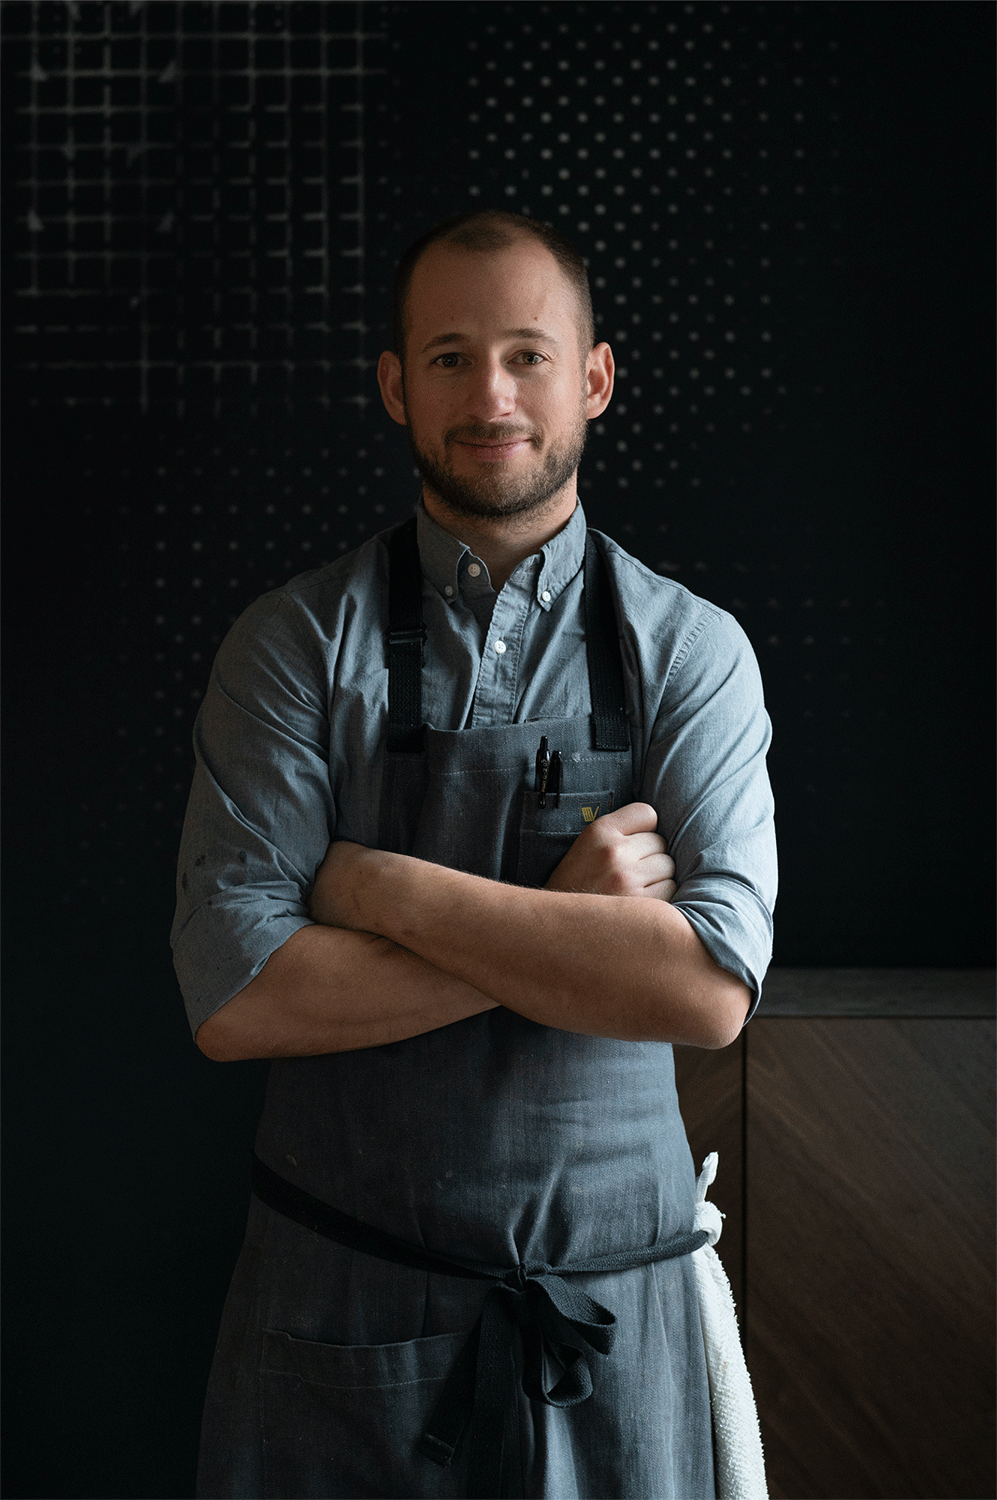 Duncan Holmes - EXECUTIVE CHEFWhen it comes to pushing the boundaries of food, Duncan, executive chef, has always cut against the grain. From his career beginnings in the Napa Valley, to time spent in Scandinavia, he has used these experiences to create food that's genuine and inspired. Recently, he led the team at sister restaurant, Call, to a recognition as one of Bon Appetit Hot 10 New Restaurants in America. Before that, he served as the Culinary Director at Frasca Food and Wine in Boulder, Colorado. With connections to Colorado, it's no surprise that his latest evolution takes place at the center of Denver's exploding food scene.